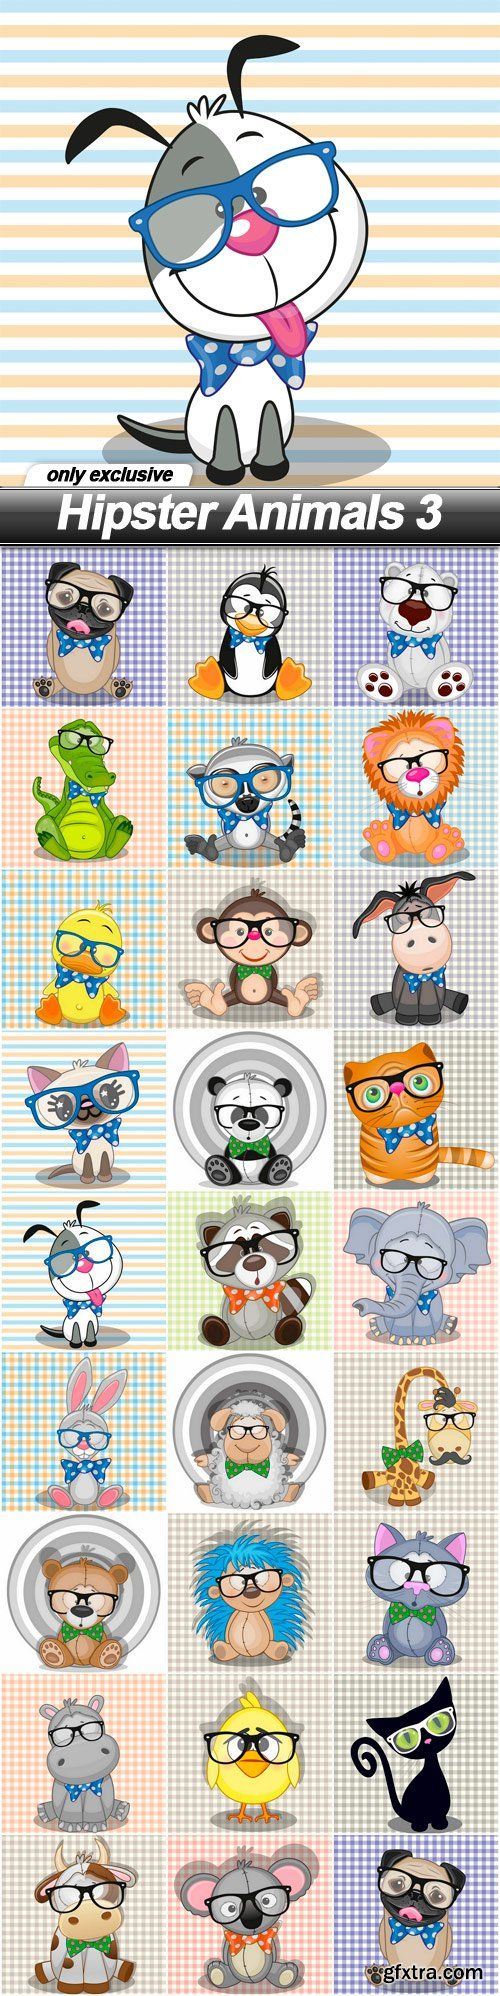 Hipster Animals 3 - 26 EPS